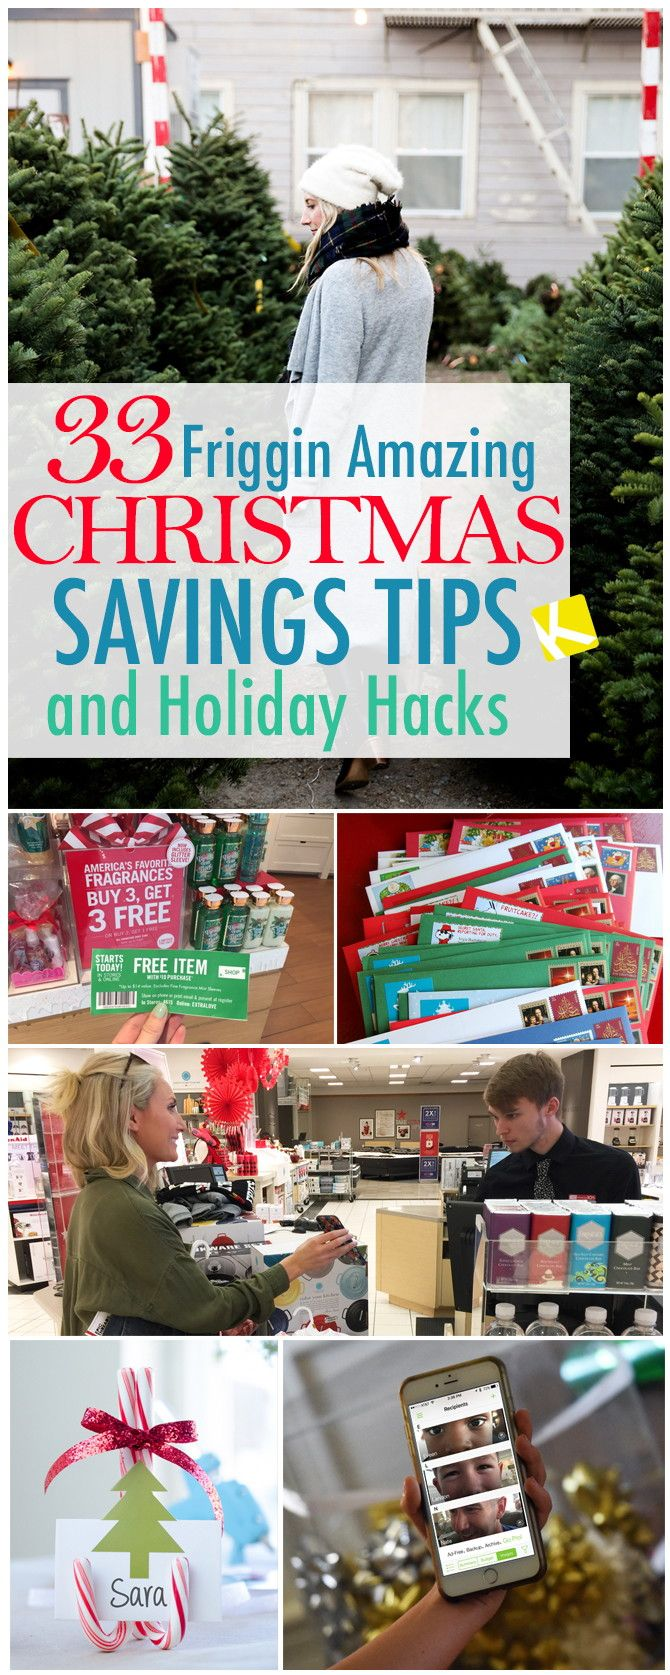 32 Amazing Christmas Savings Tips and Holiday Hacks -   15 holiday Hacks good ideas